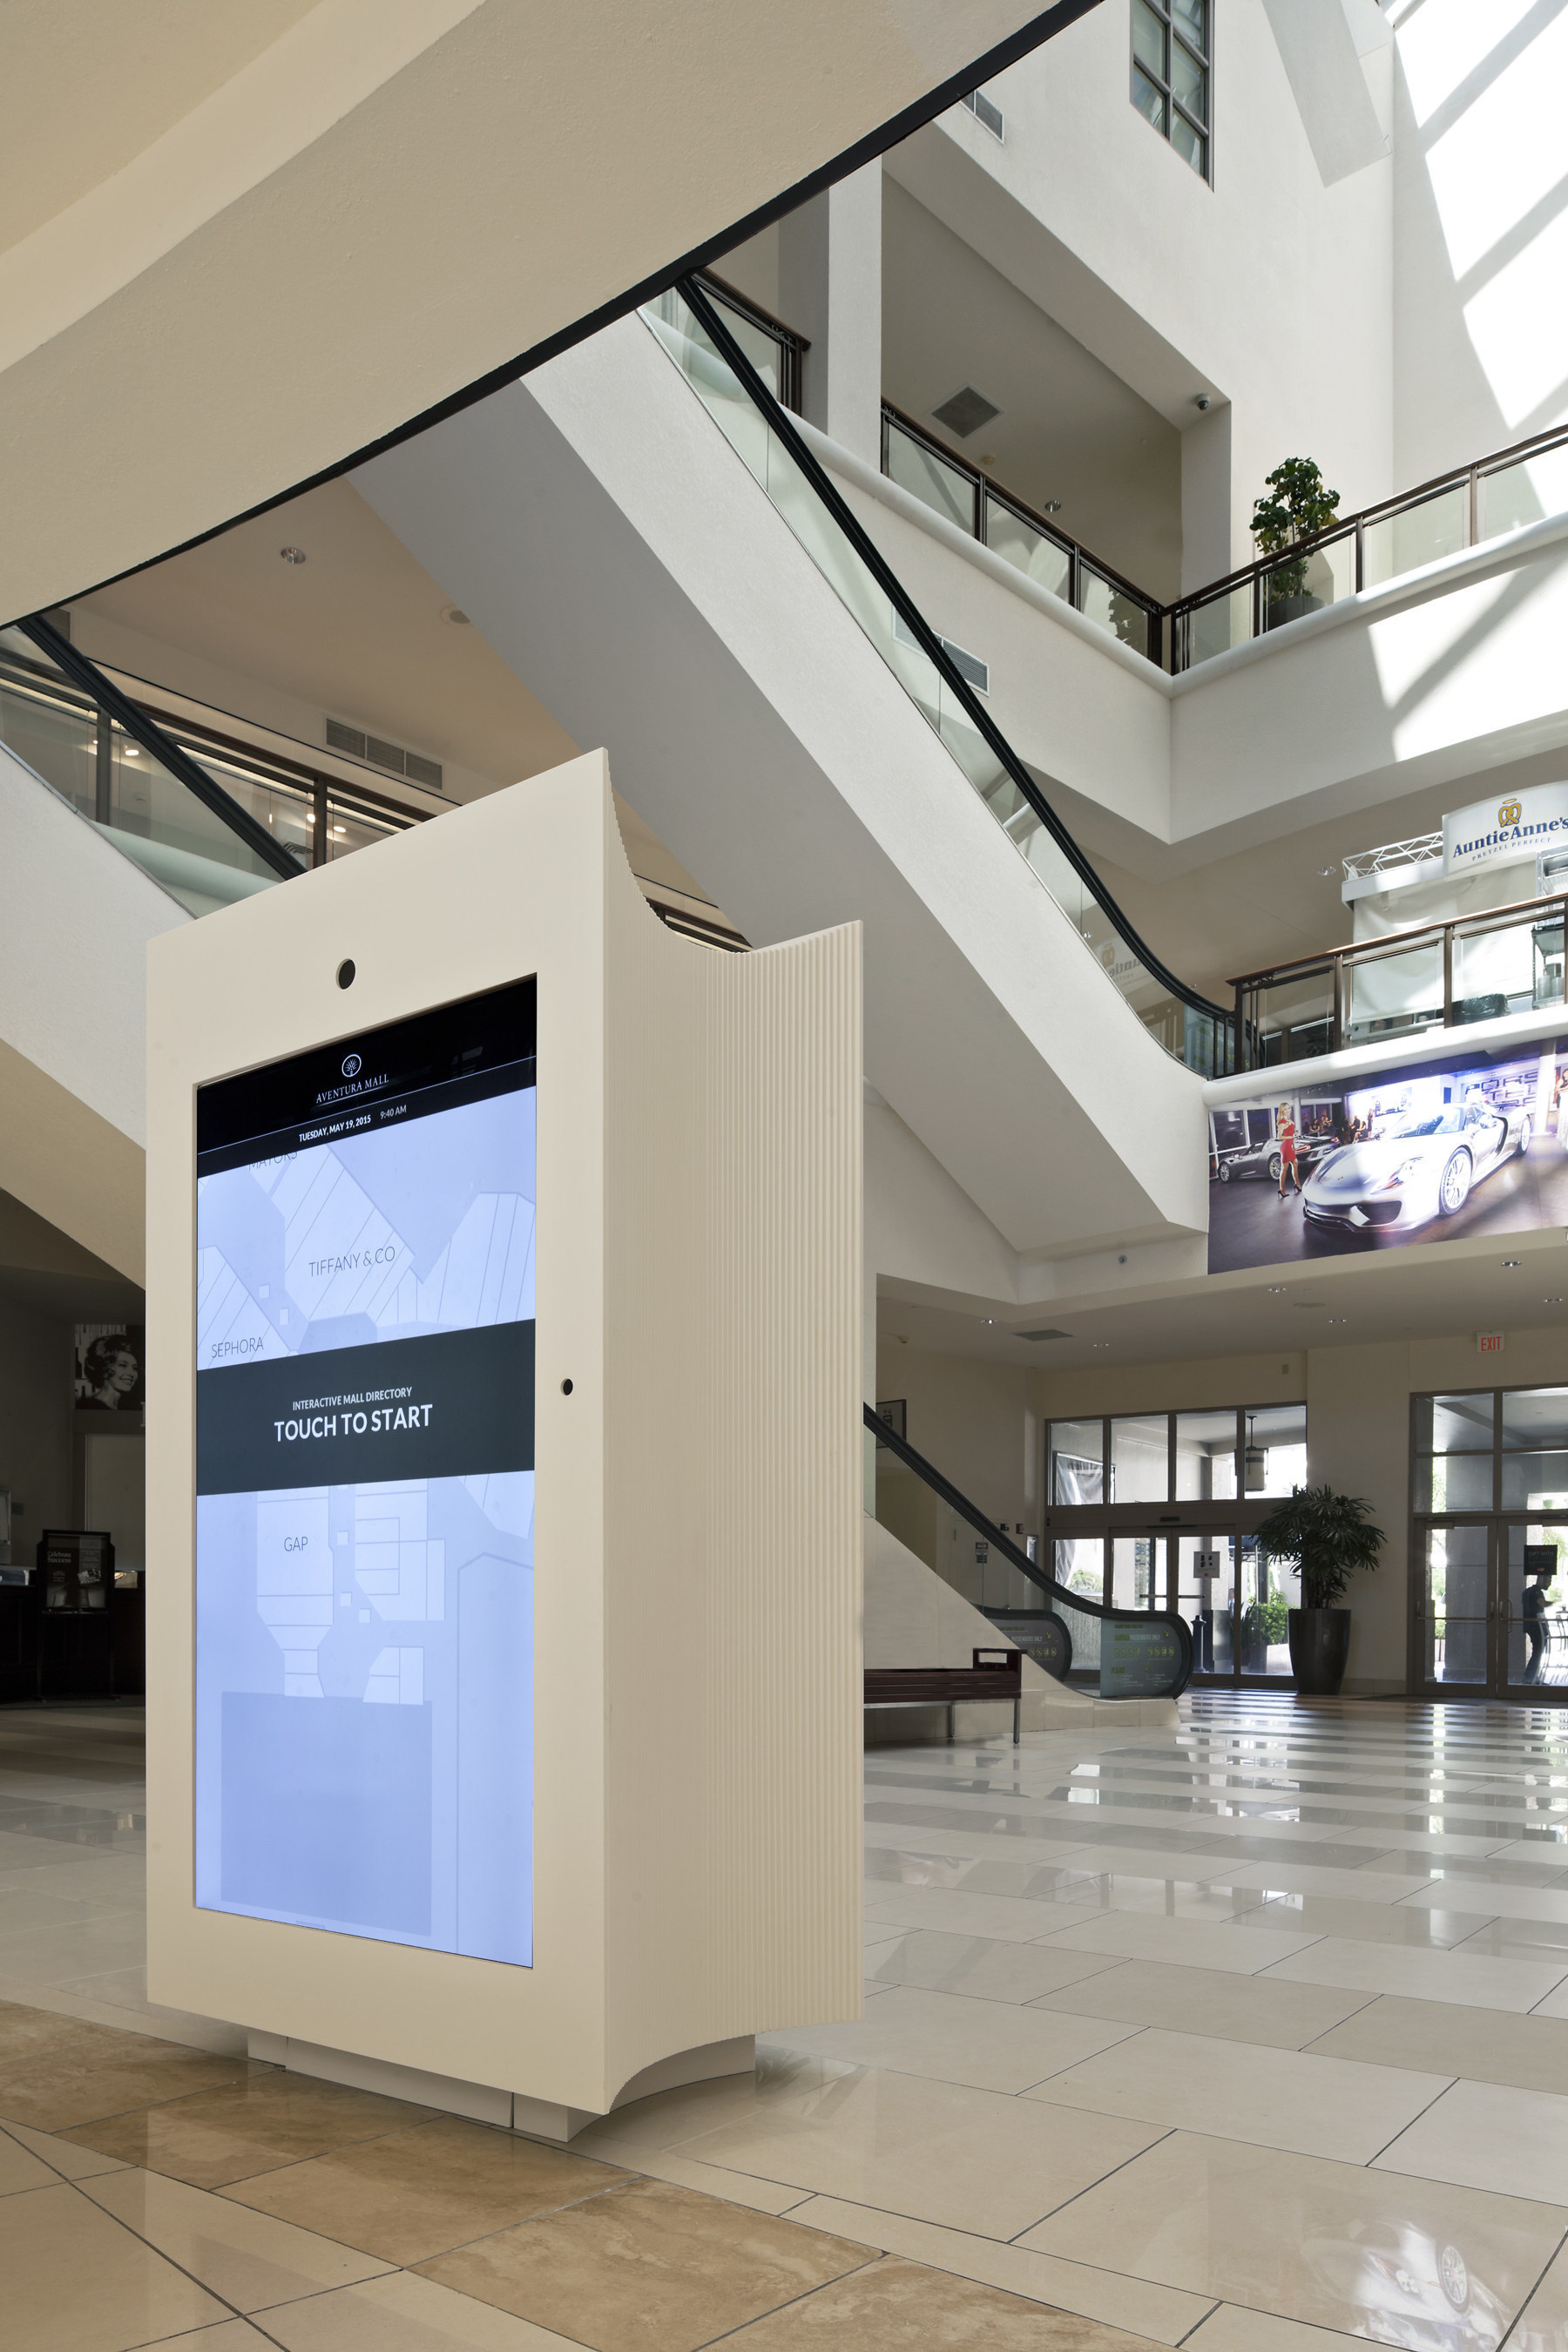 Aventura Mall's New Digital Directories Merge Art, Architecture And Industry-Leading Technology